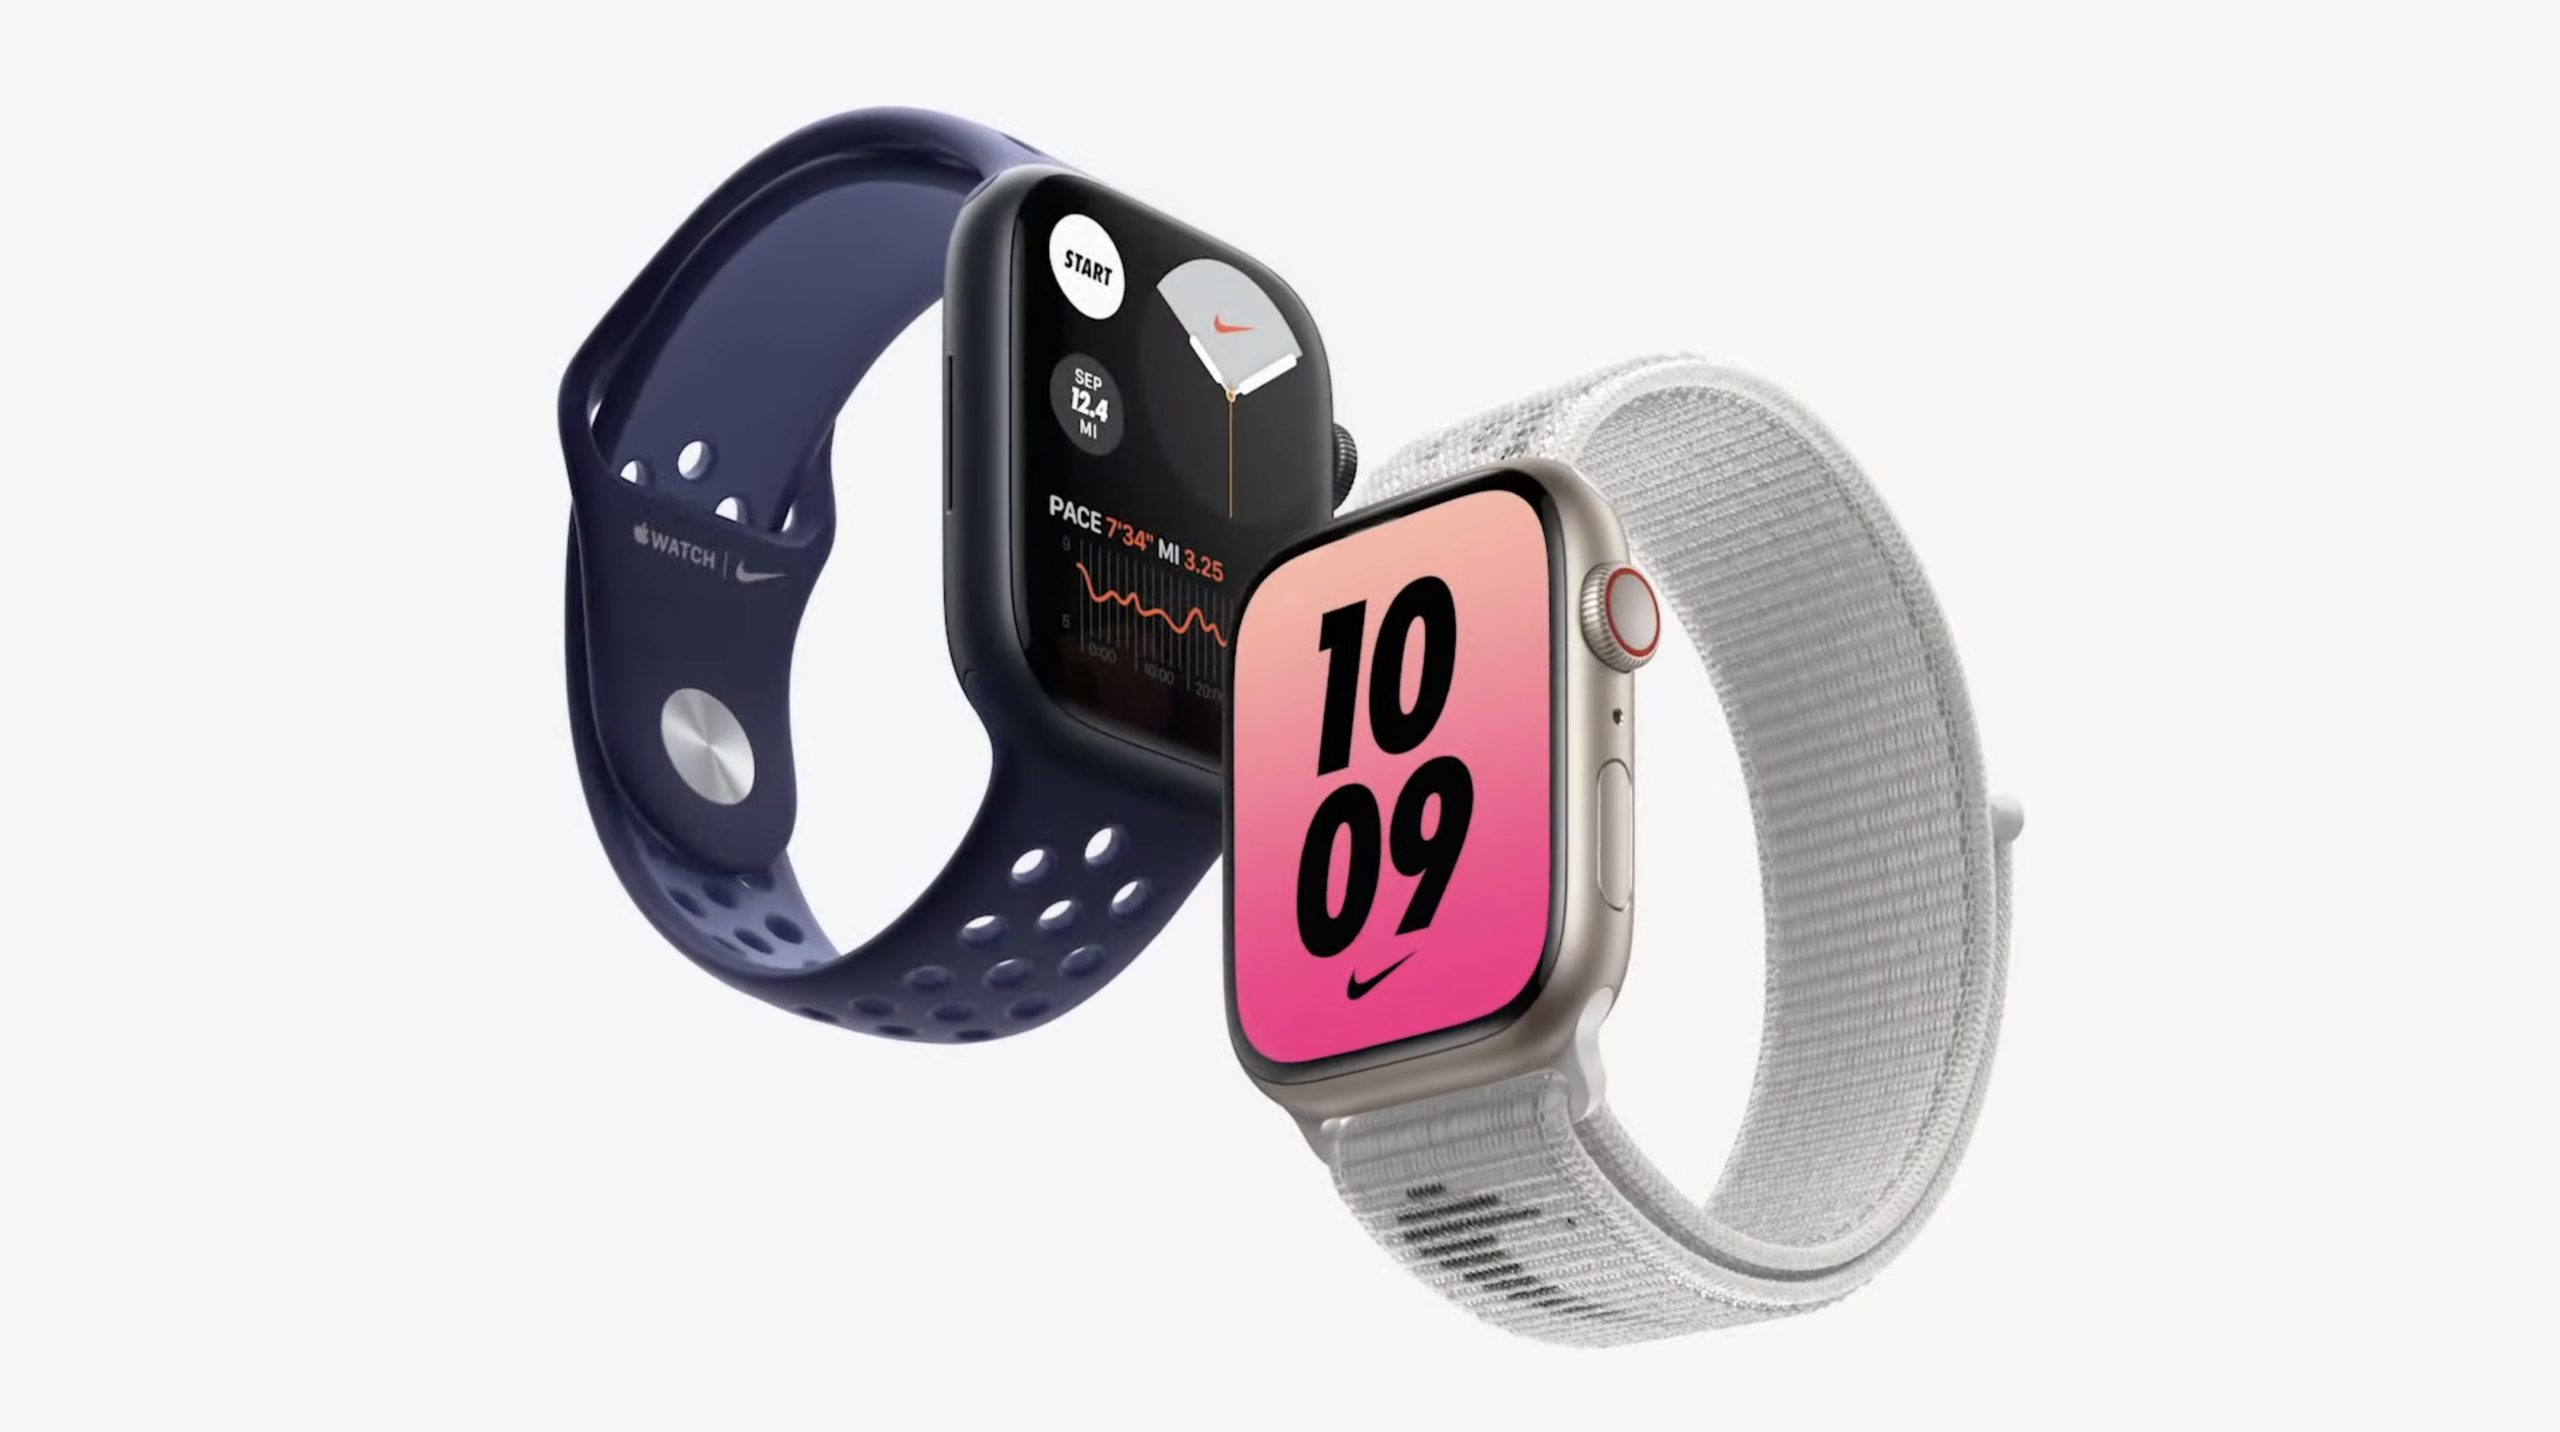 Apple Watch Series 7 announced with larger display, more emphasis on sports and health